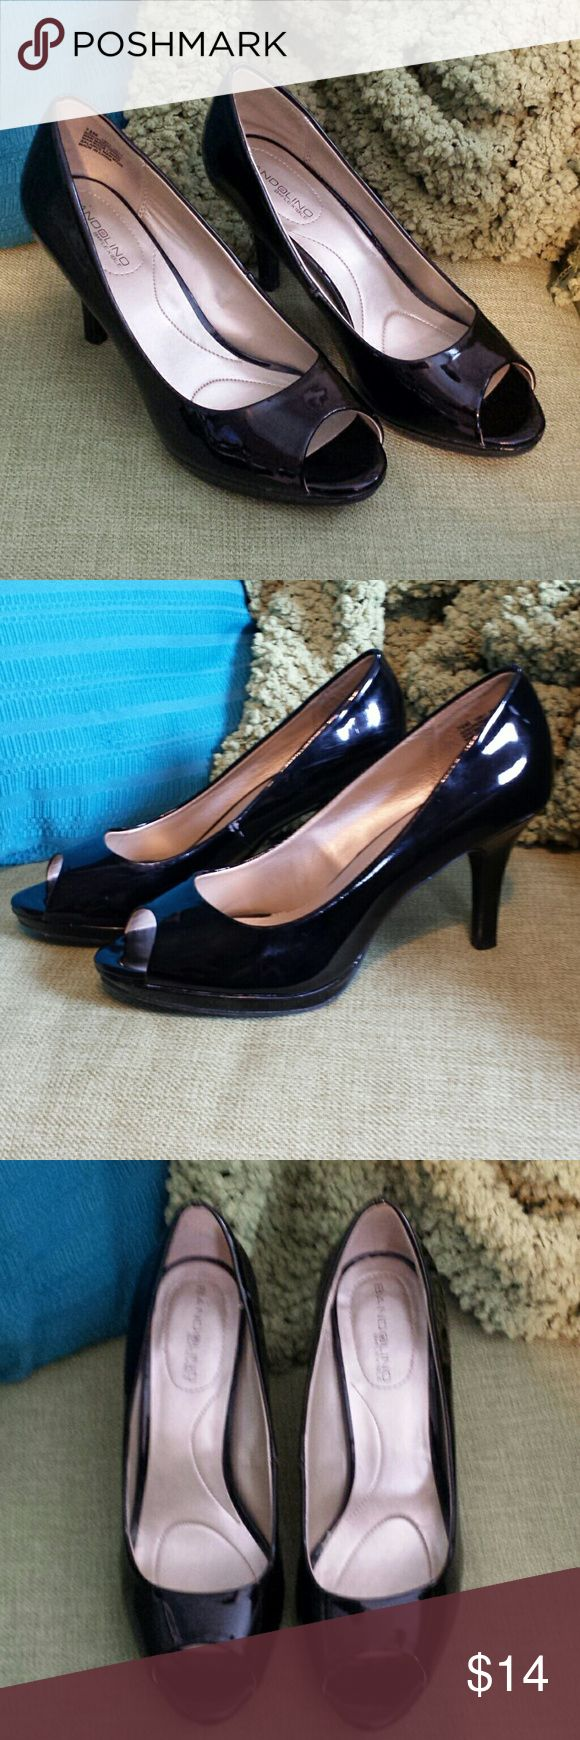 Black peep toe heels Bandolino black heels. Cute peep toe. Some scuffs and signs of wear, but still look great overall. Bandolino Shoes Heels